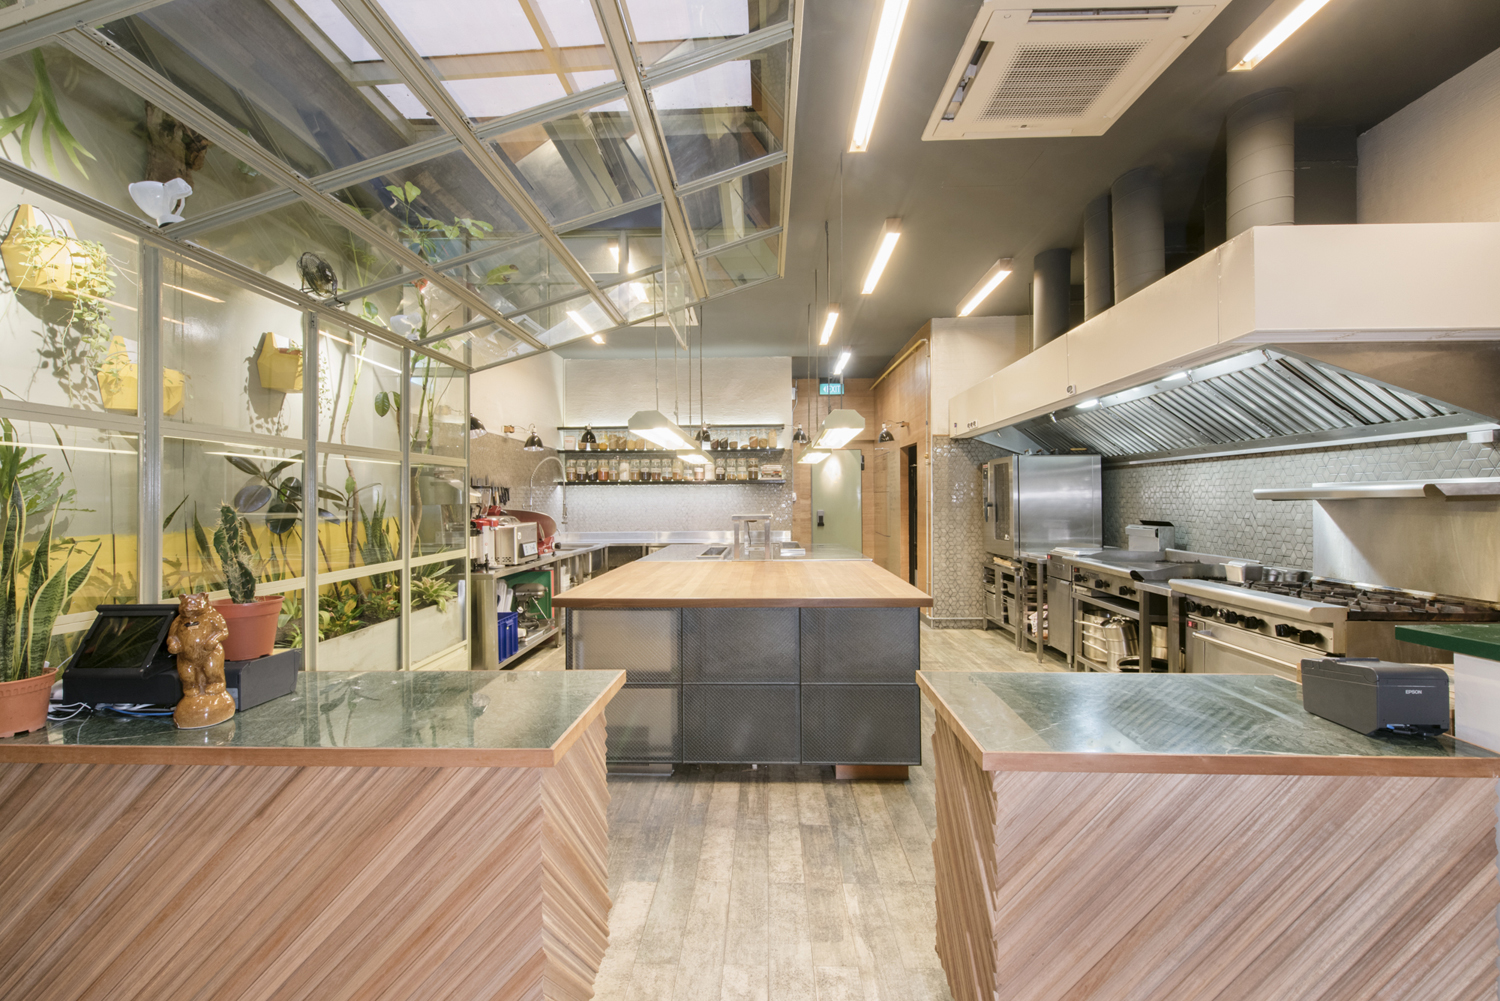 Interior design by Foreign Policy for Singapore's Park Bench Deli